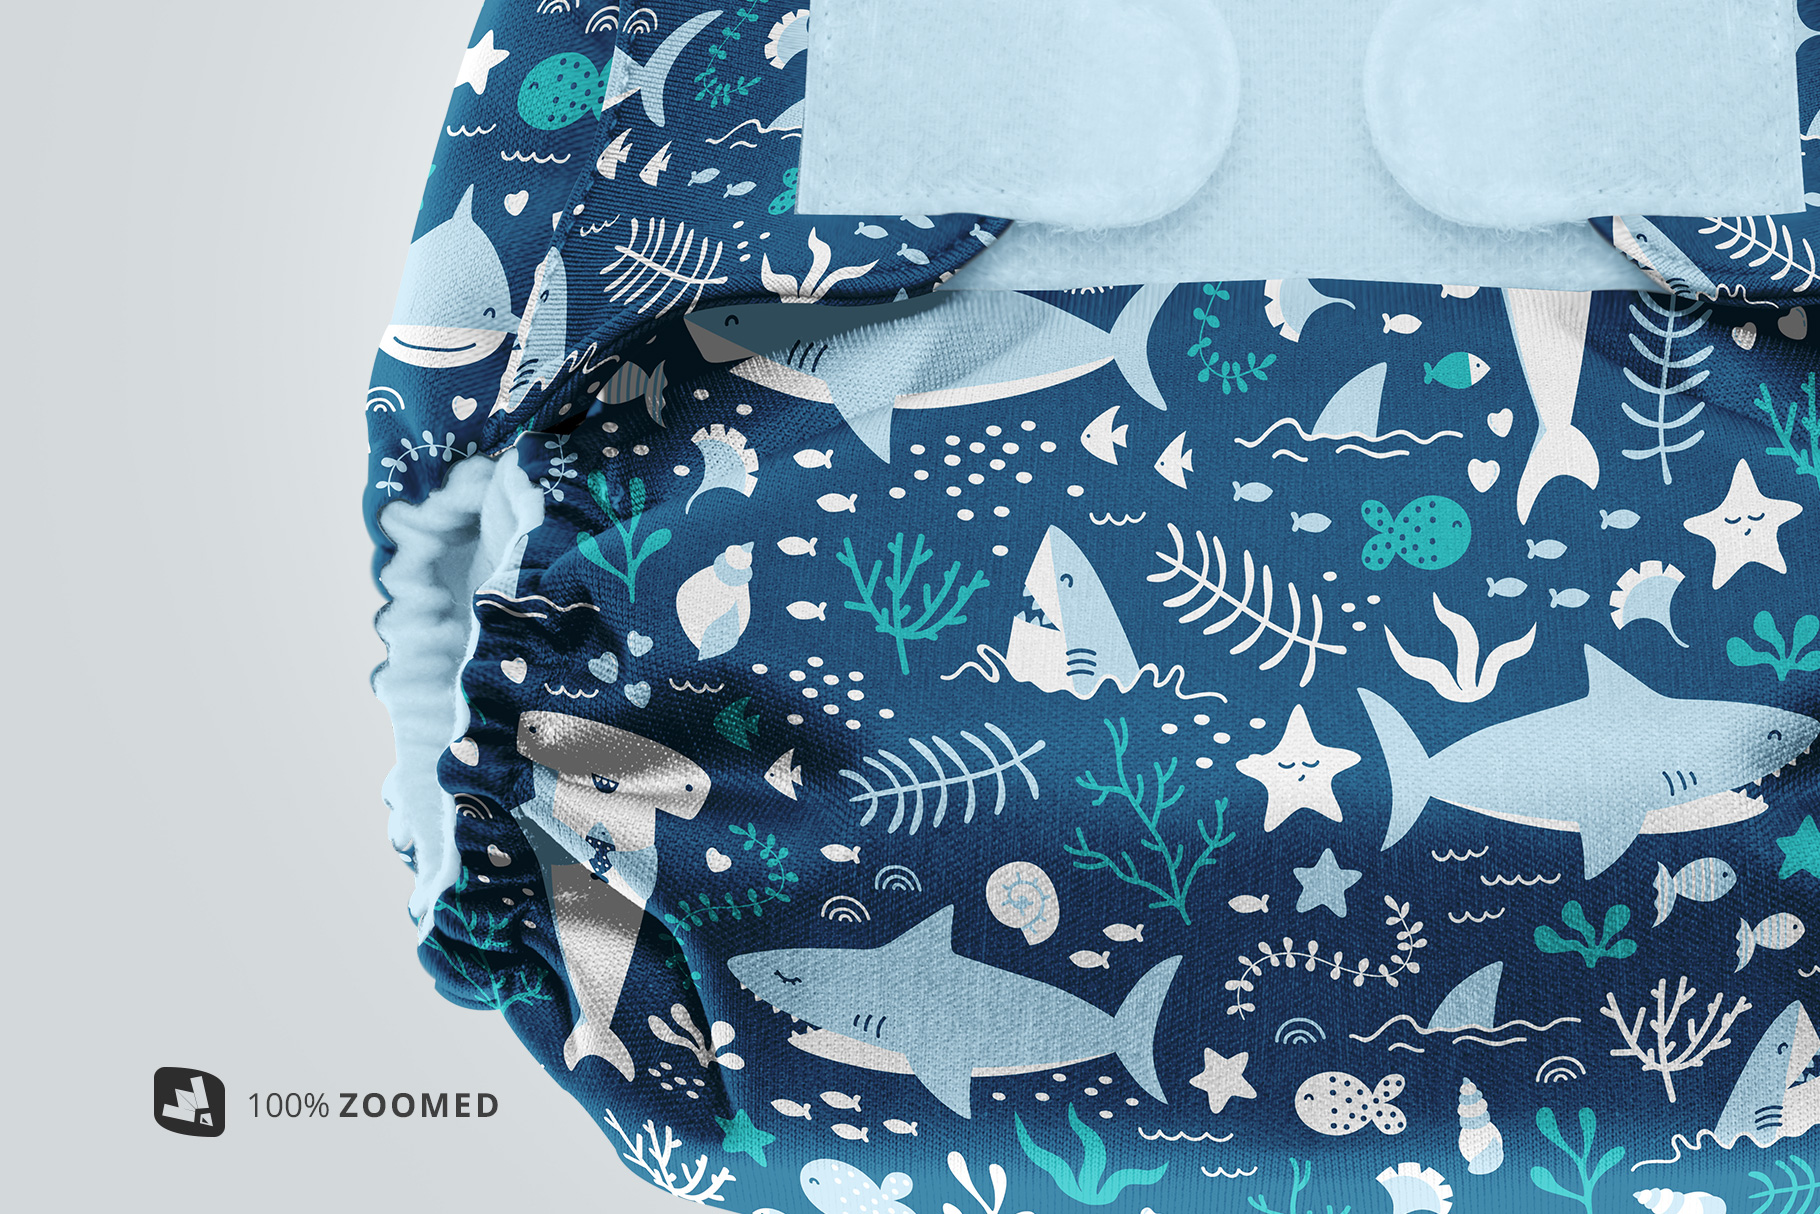 zoomed in image of the reusable velcro cloth diaper mockup